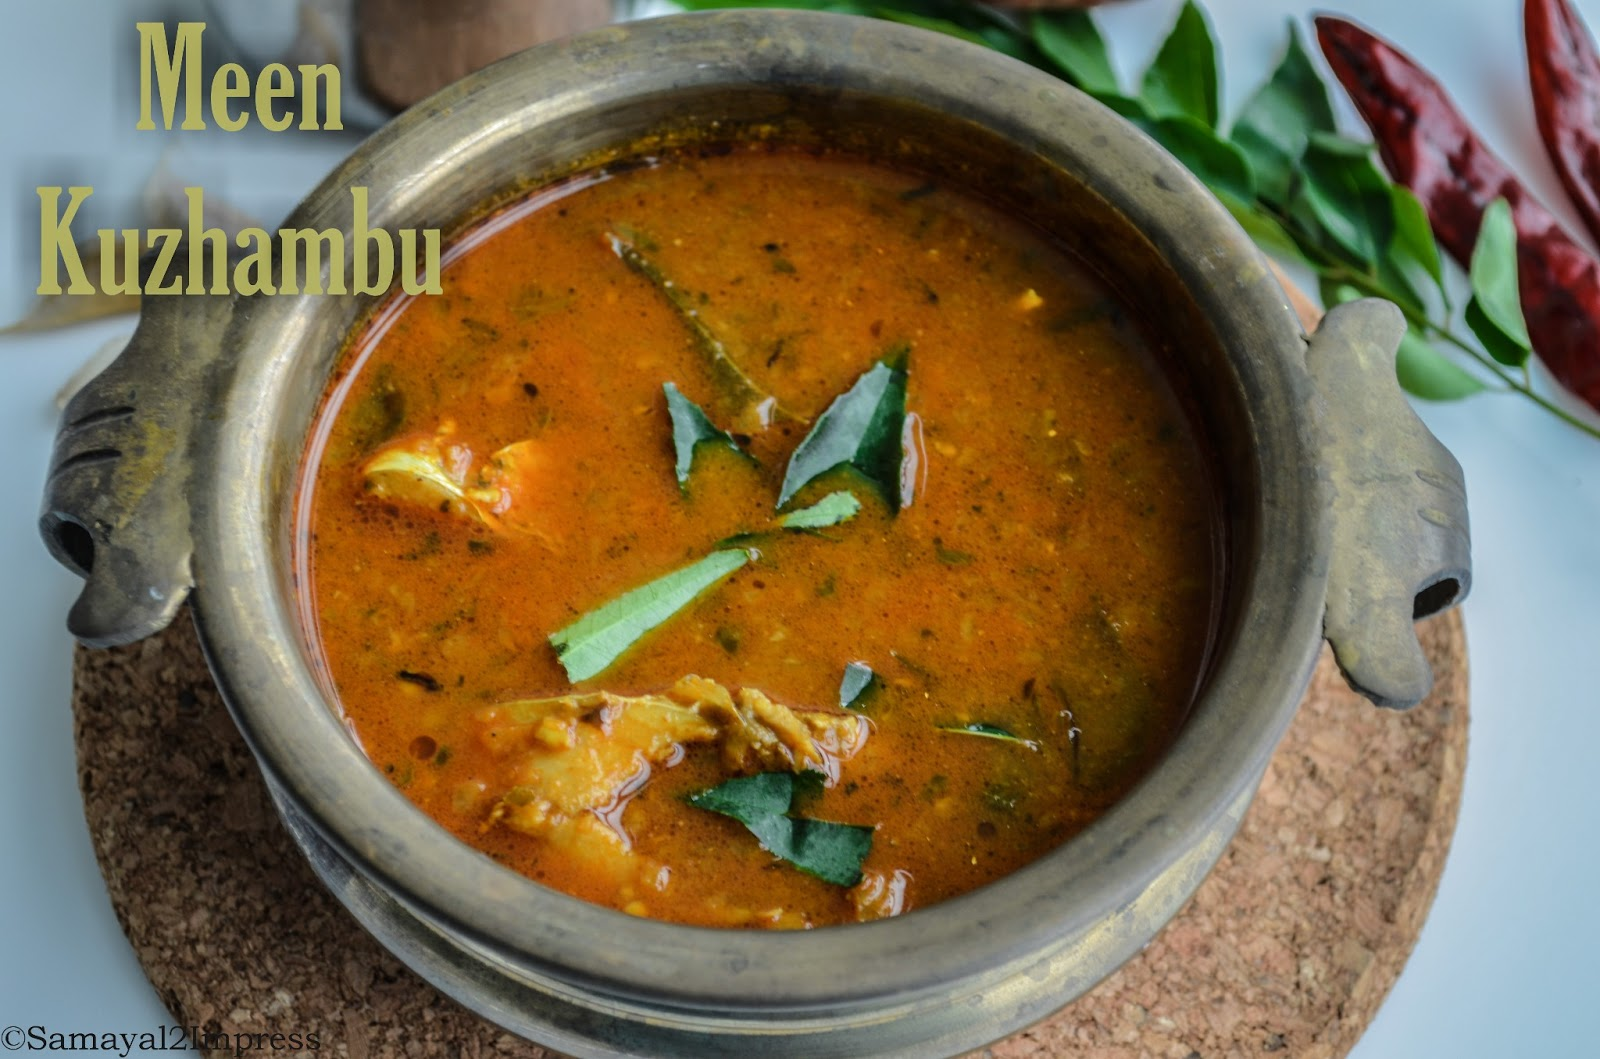 Samayal2impress Meen Kuzhambu Fish Curry